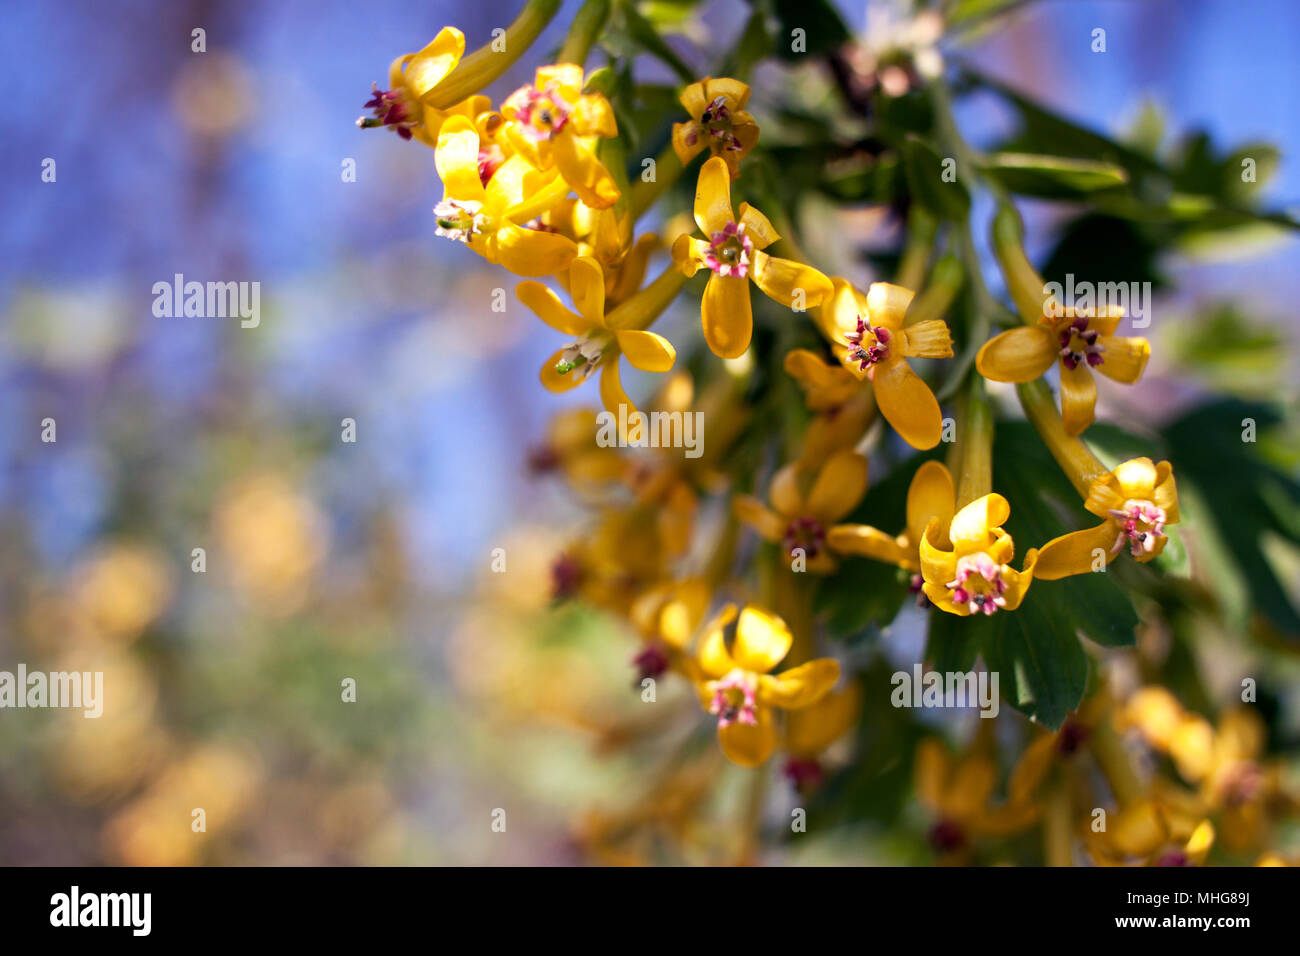 Yellow Flowers Of Golden Currant Ribes Aureum Stock Photo 182910606